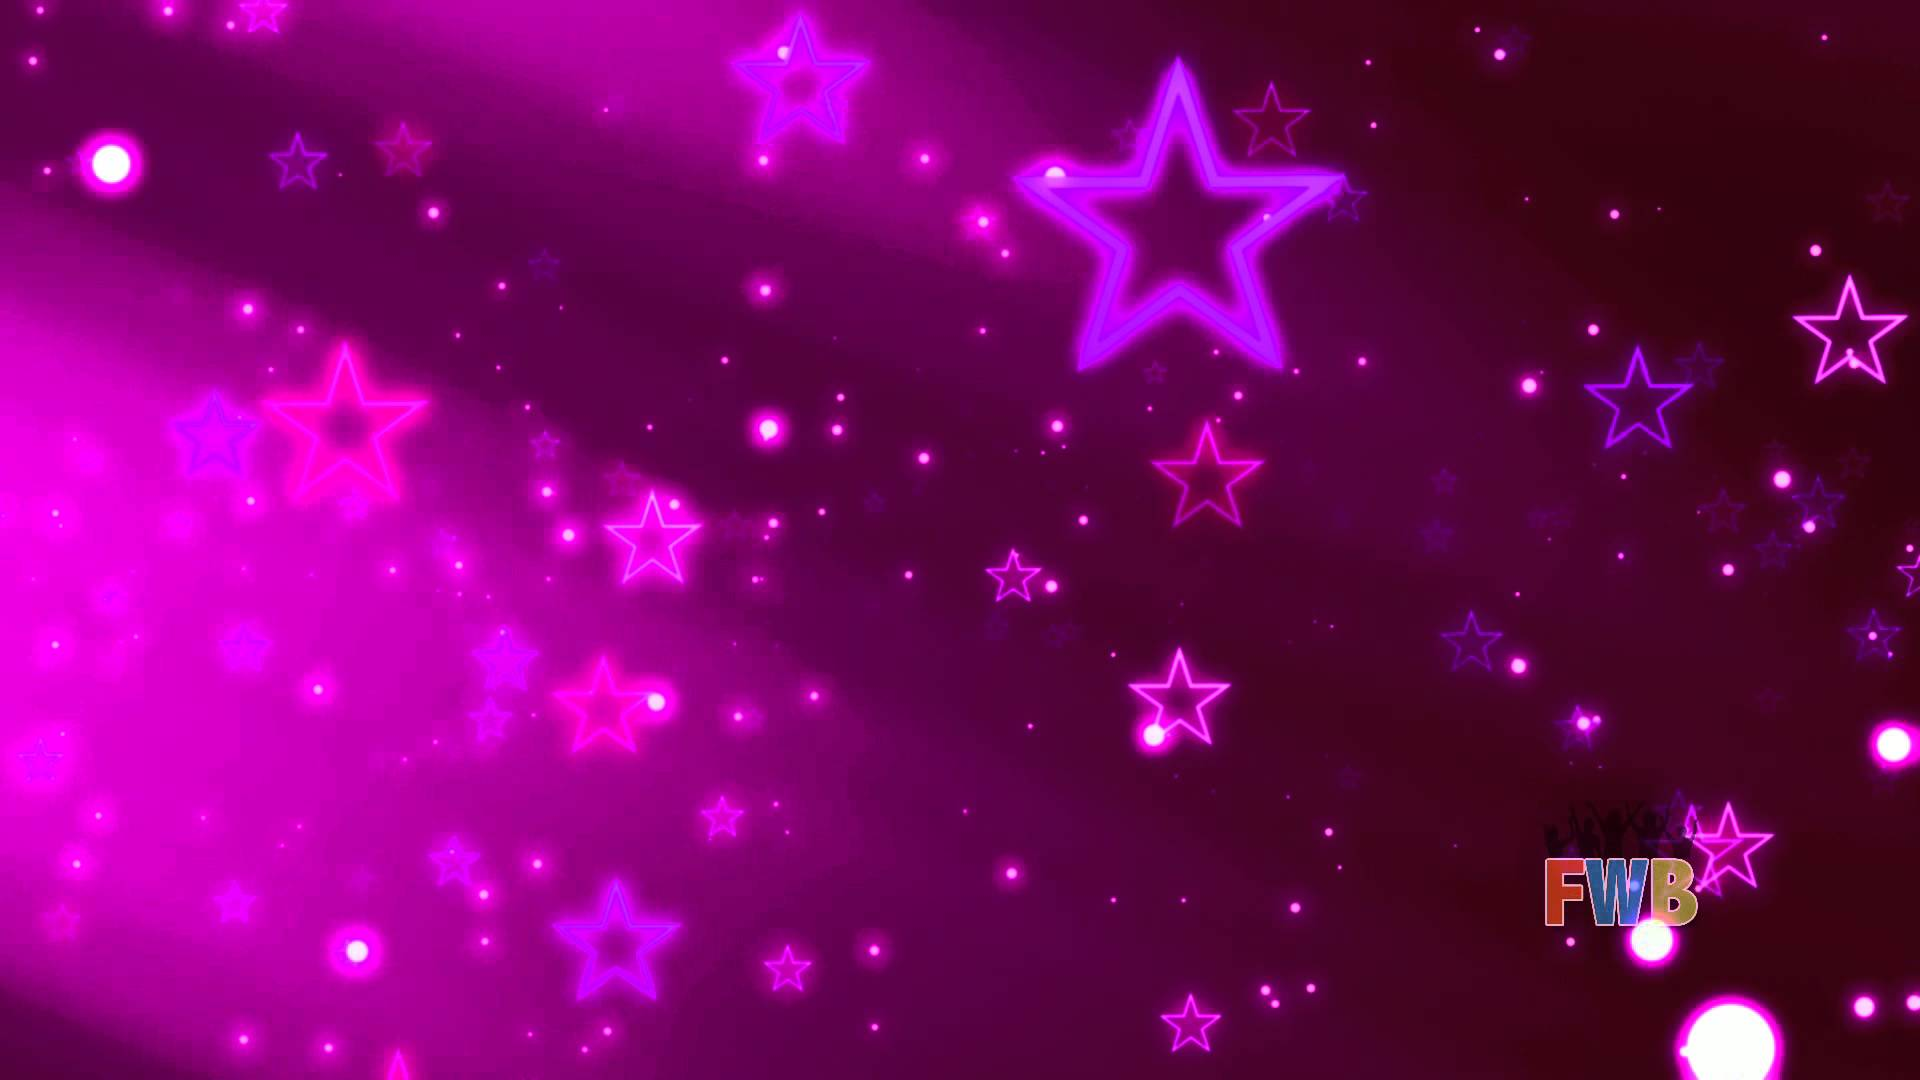 Animated Stars Wallpaper - WallpaperSafari